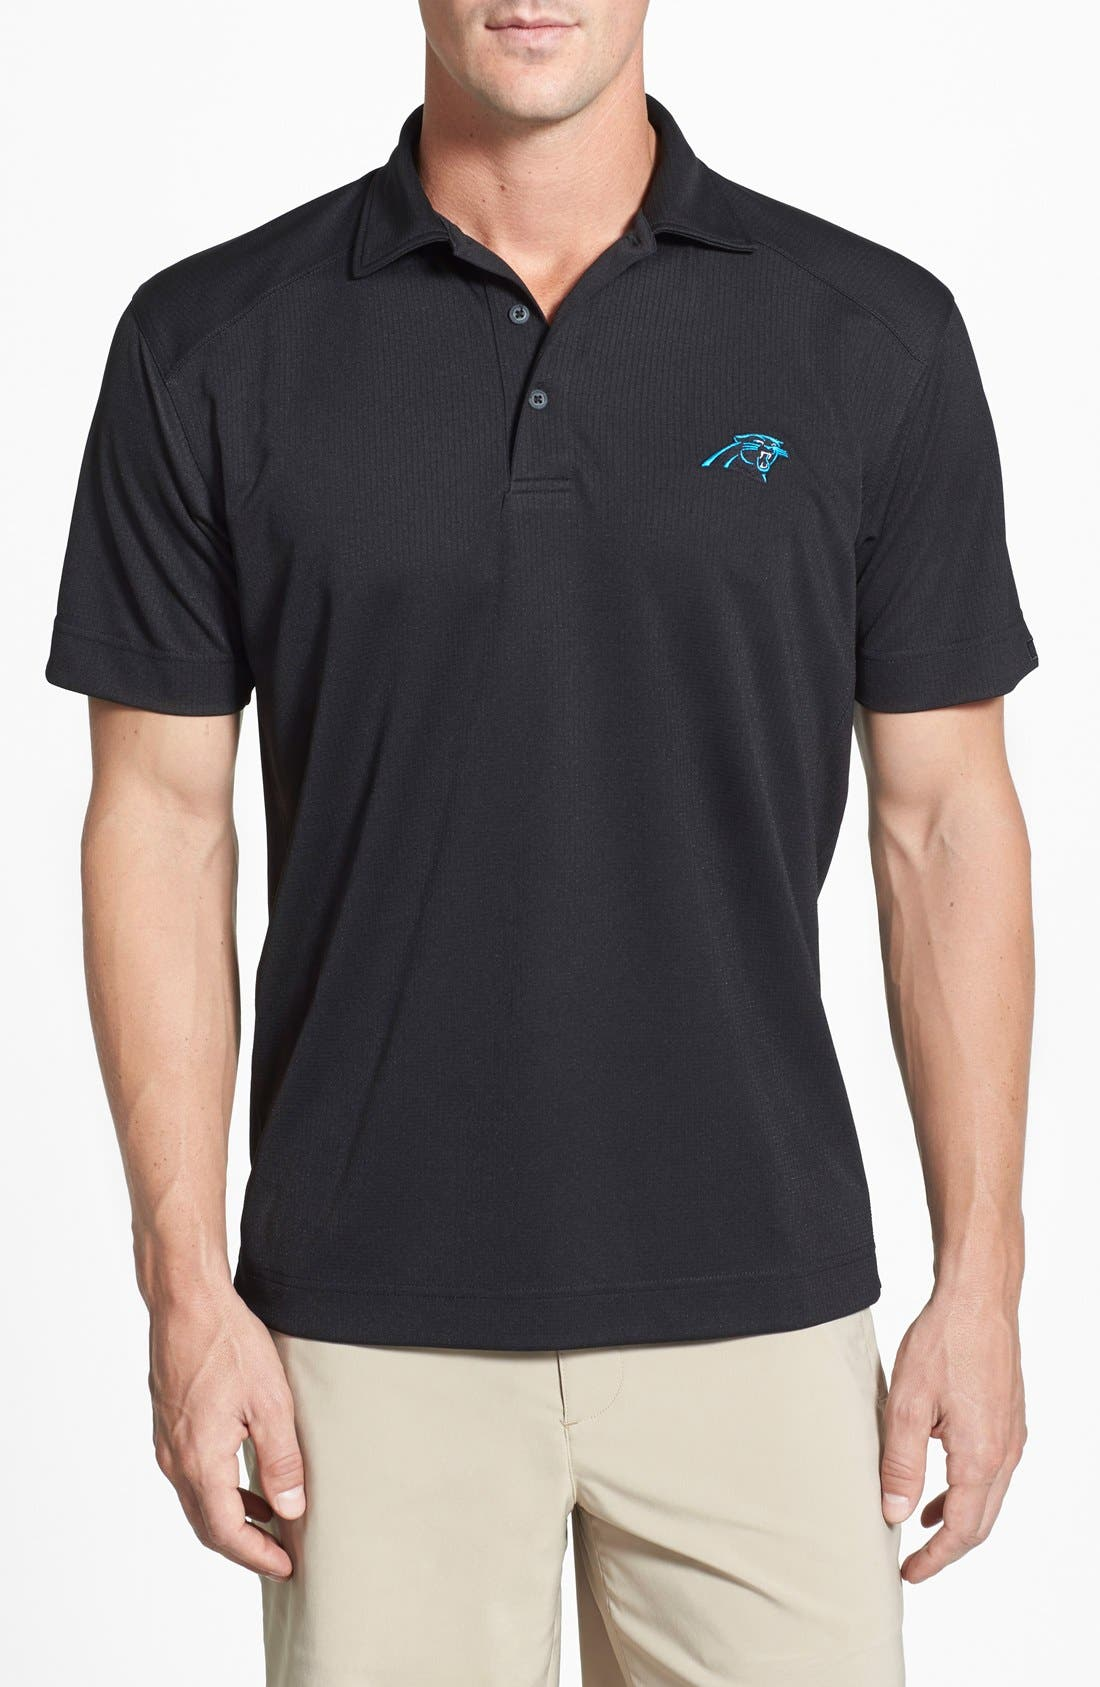 Carolina Panthers - Genre DryTec Moisture Wicking Polo,                             Main thumbnail 1, color,                             Black